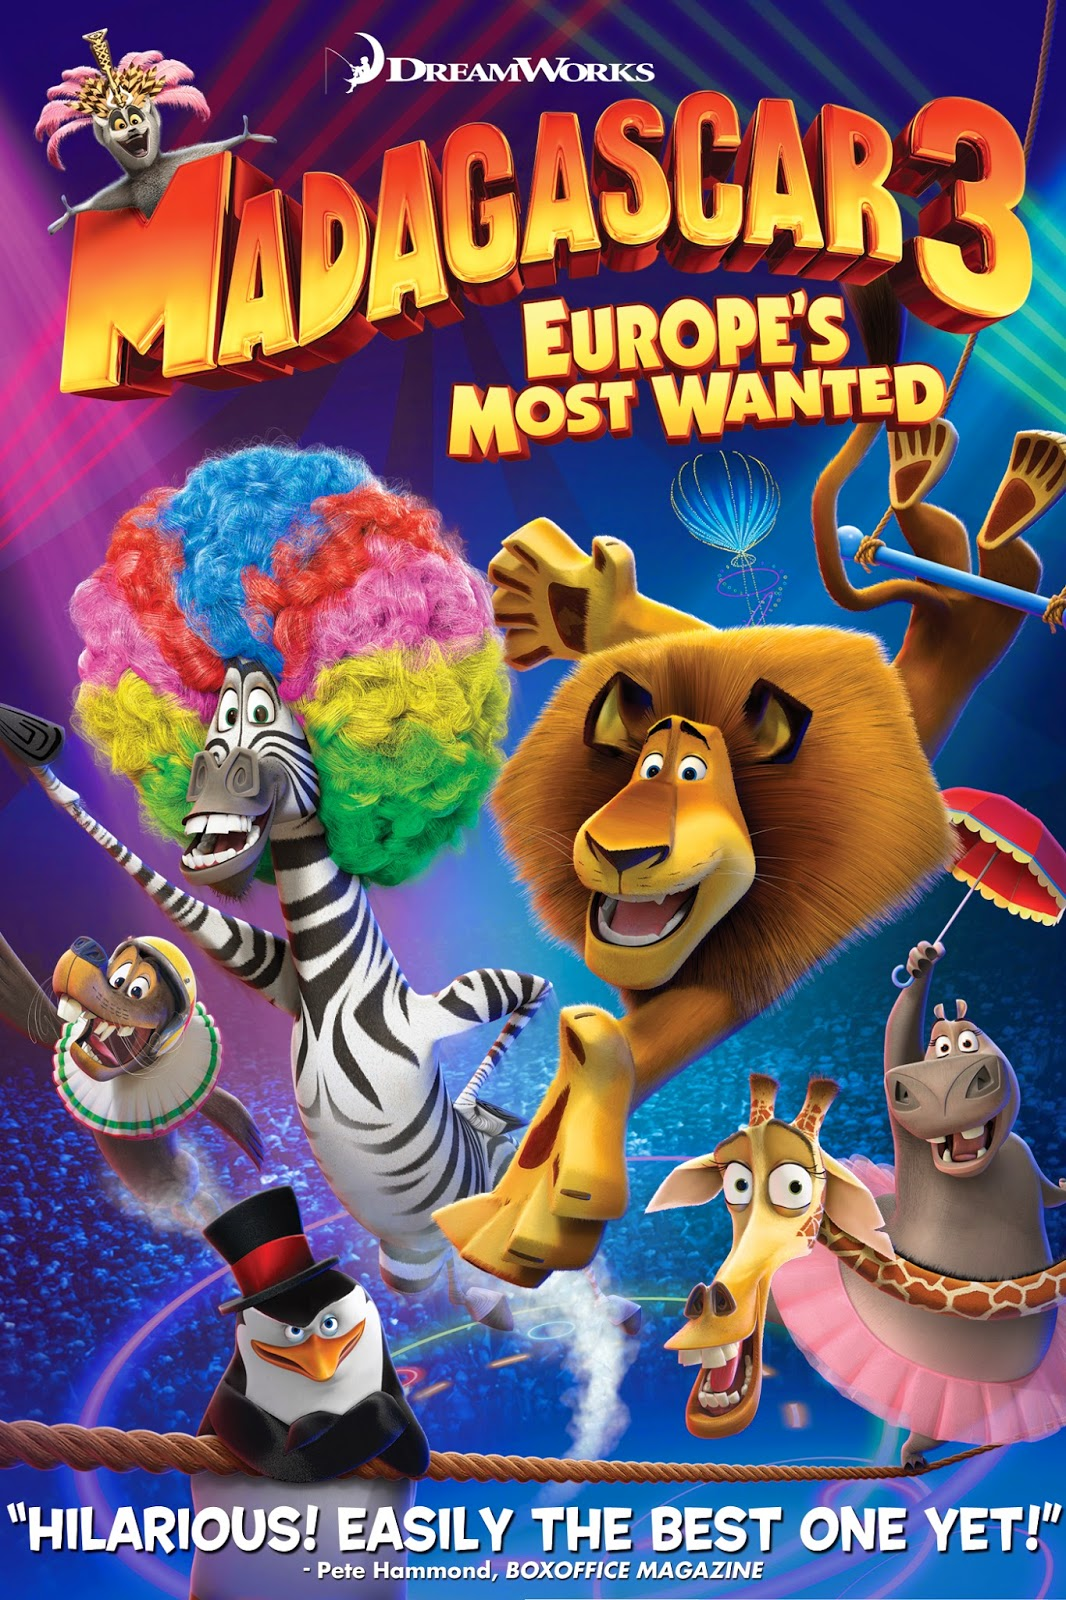 Madagascar 3: Europeu0026#39;s Most Wanted : Animation Movies